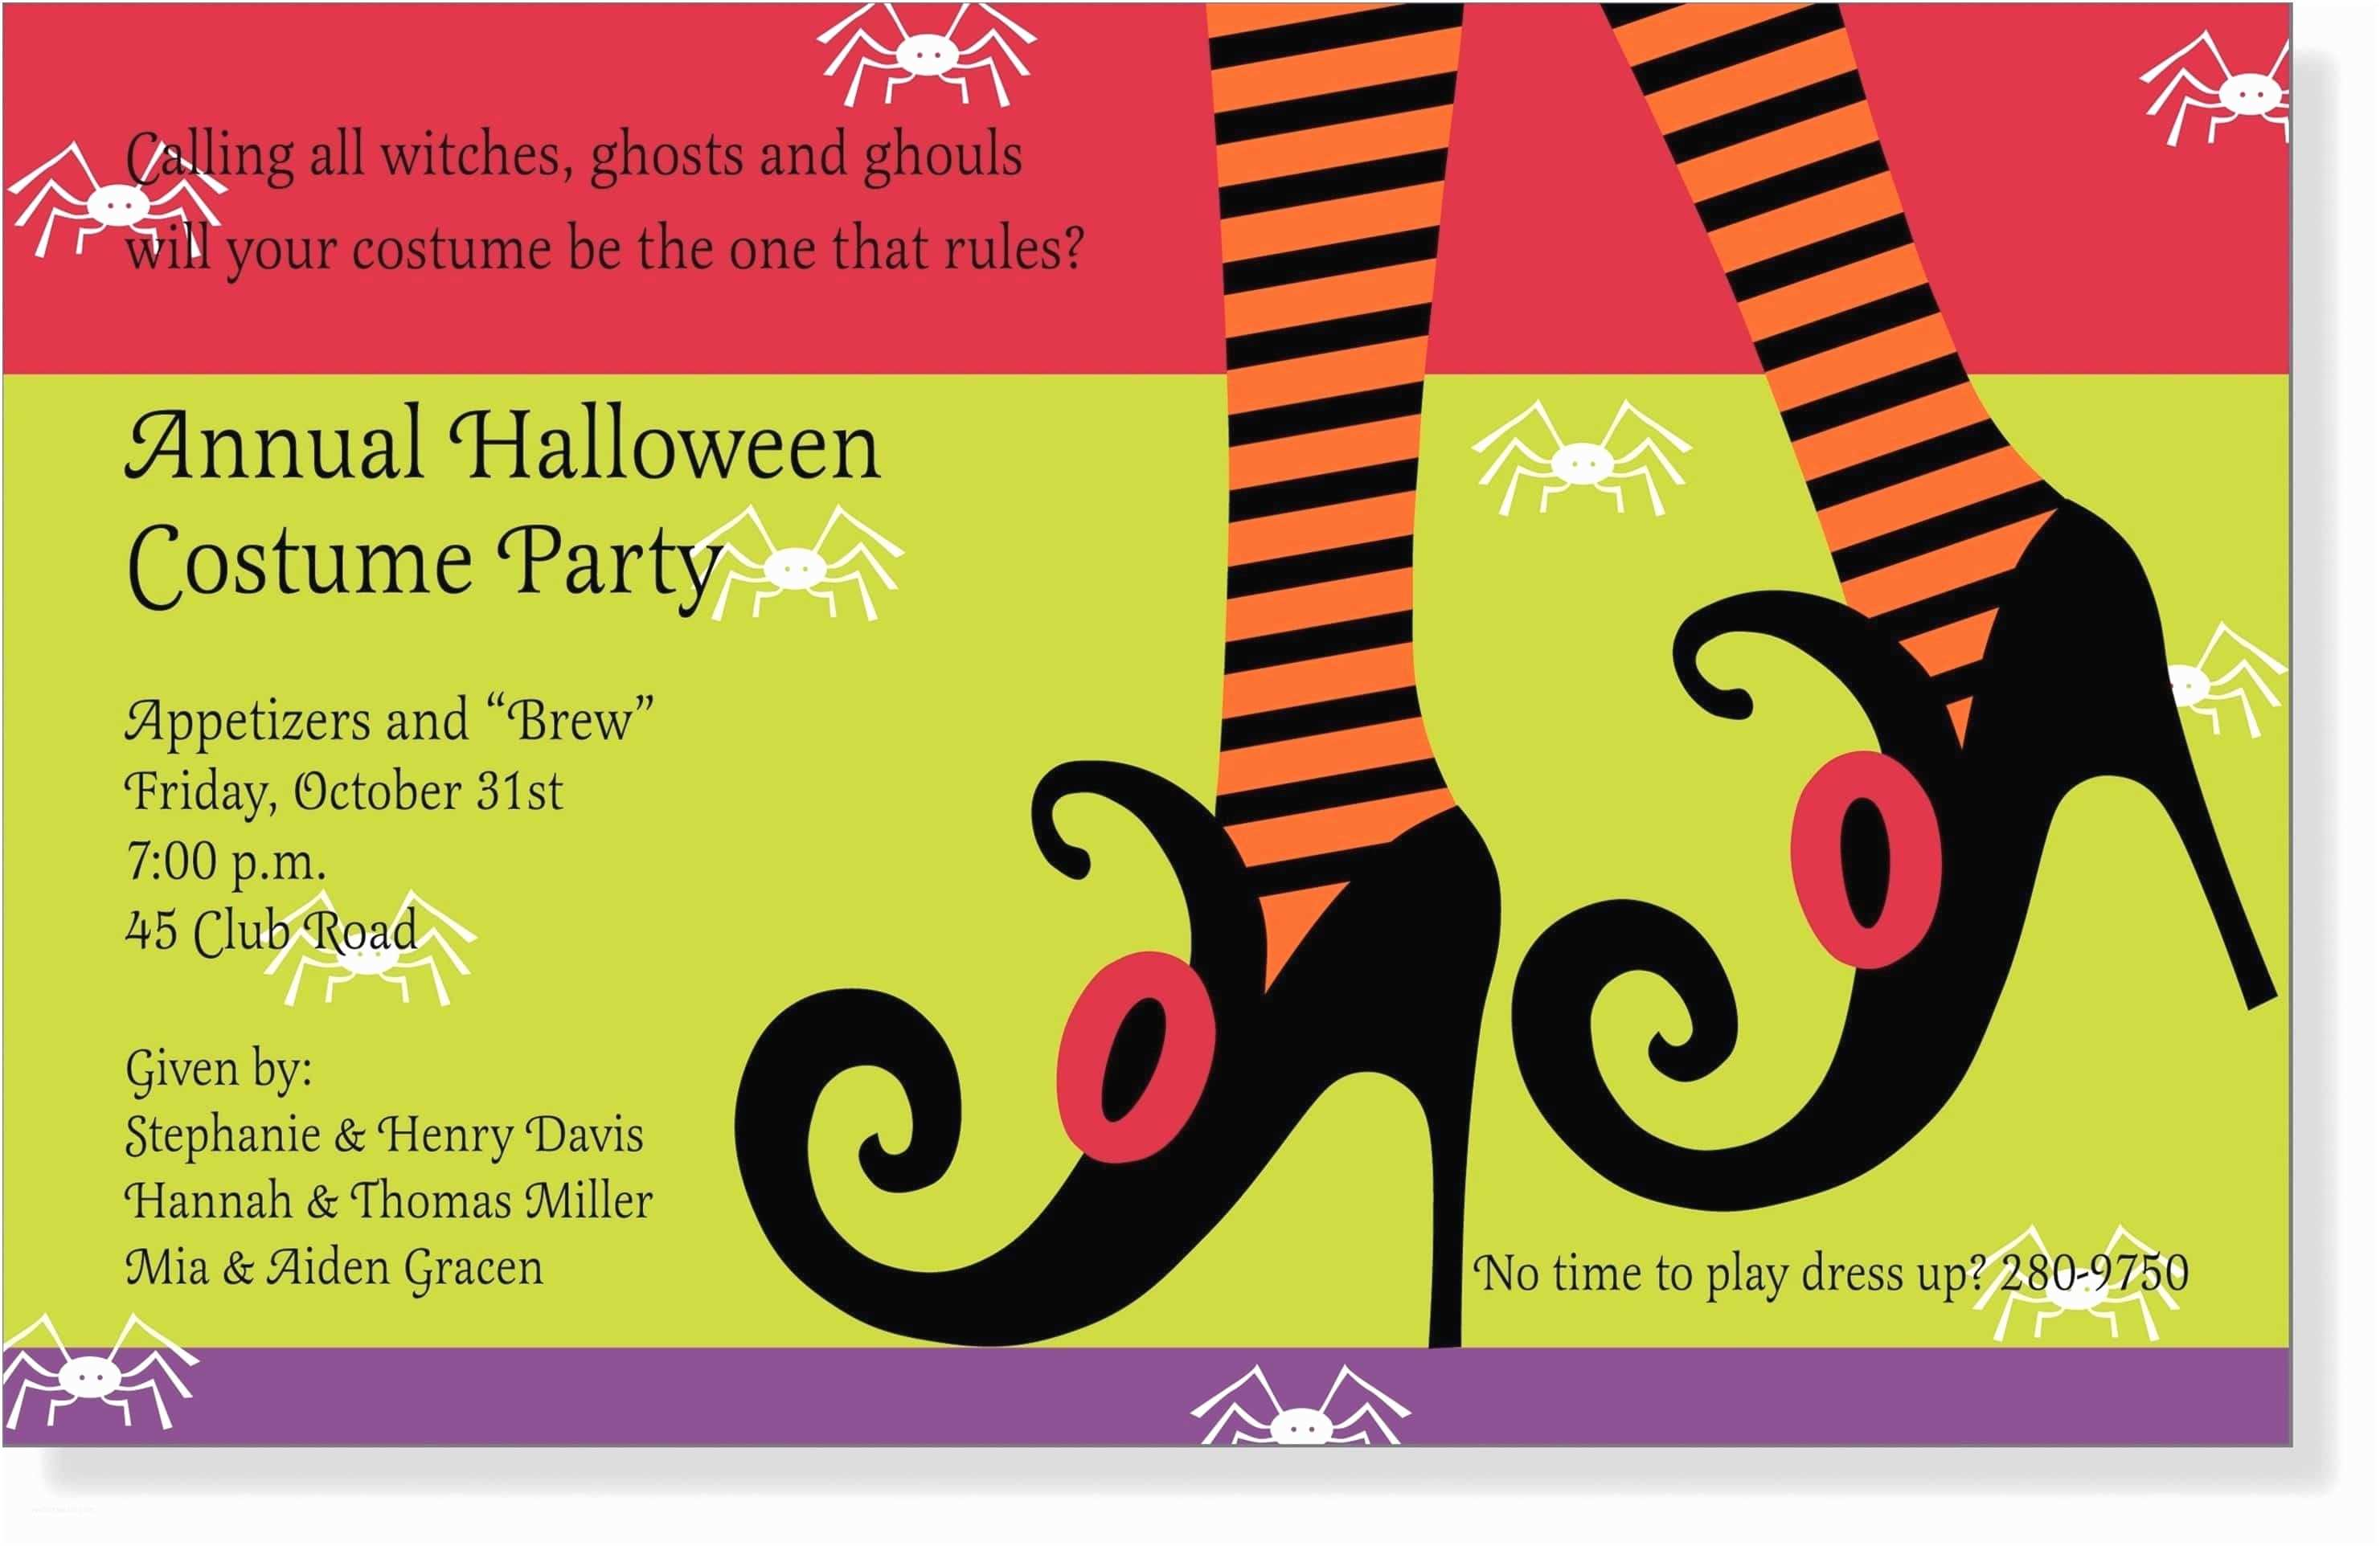 Costume Party Invitations Tips Easy to Create Halloween Party Invitation Wording